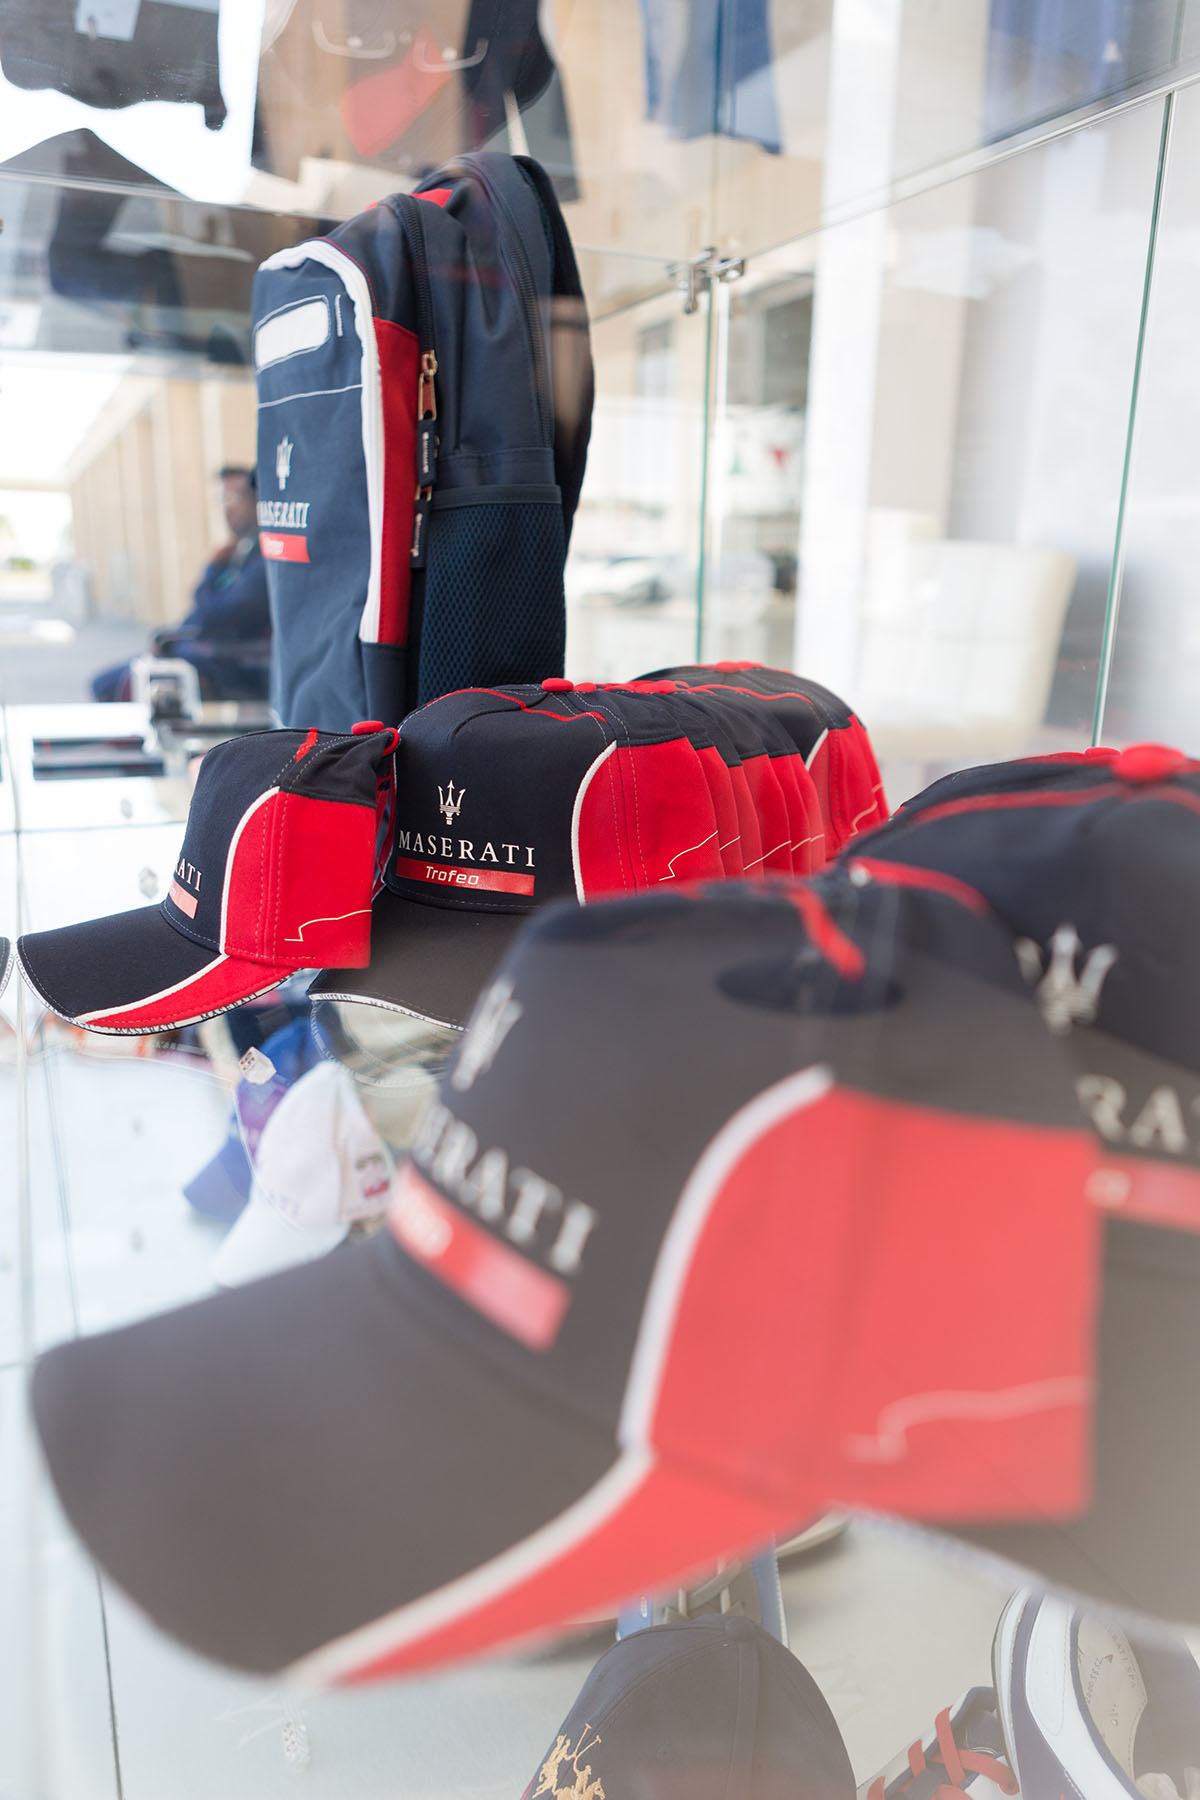 Merchandise at the Maserati Trofeo event by Loesje Kessels Fashion Photographer Dubai